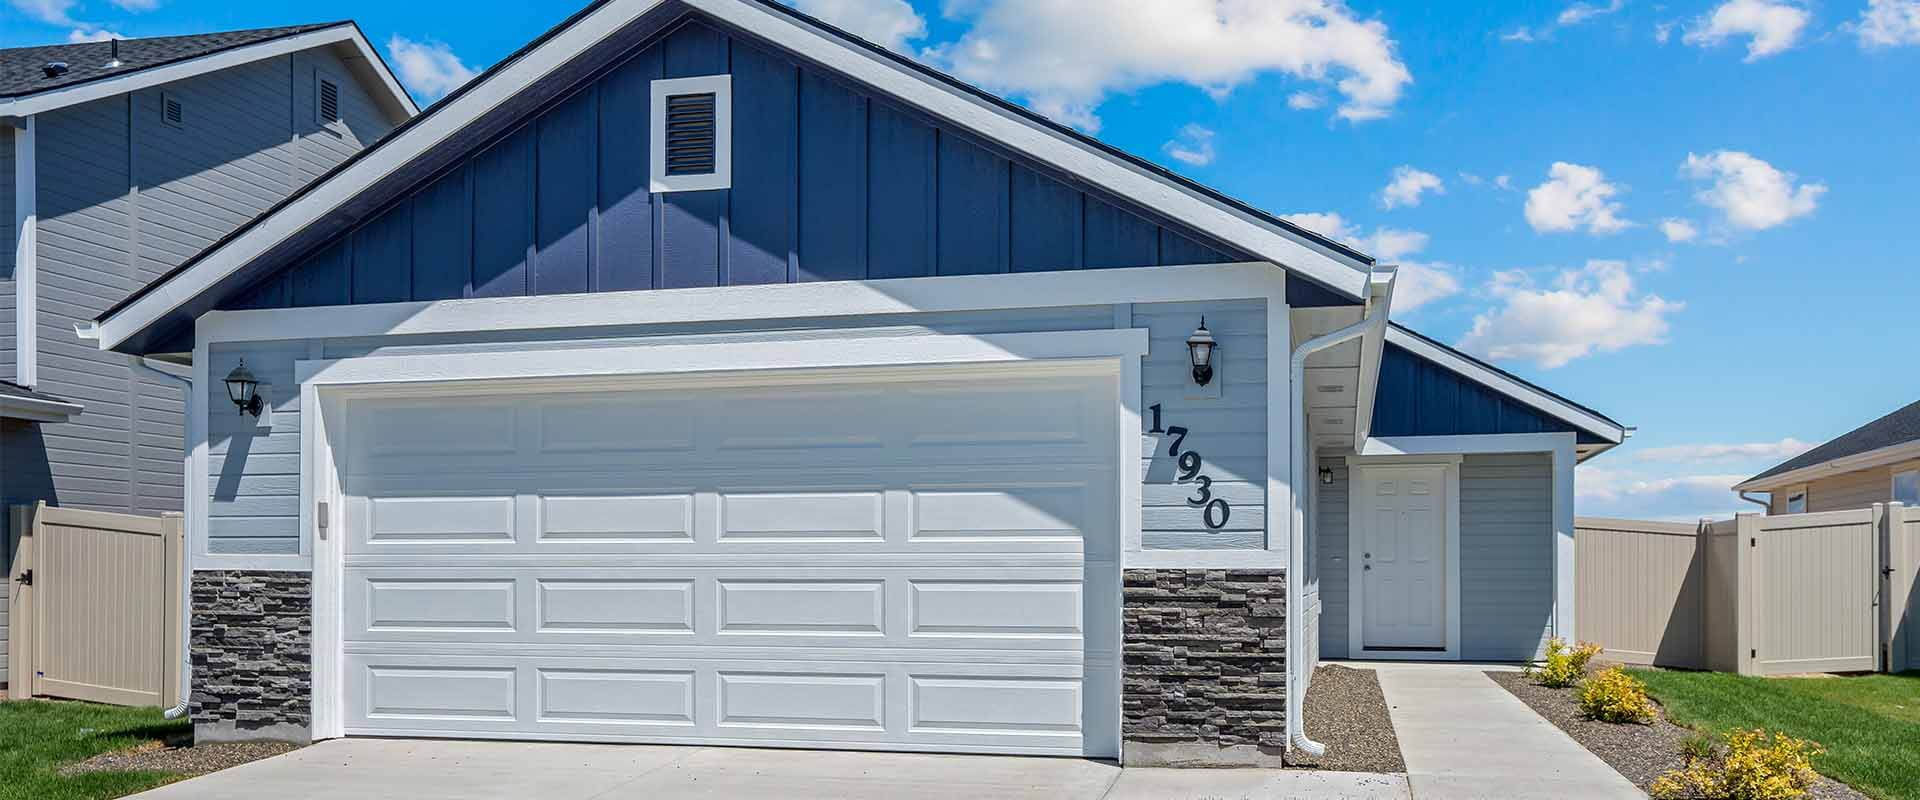 Huckleberry_Hubble_Homes_New_Homes_Boise_0004_Exterior - Huckleberry - 17930 Hensley Ridge Pl-2.jpg